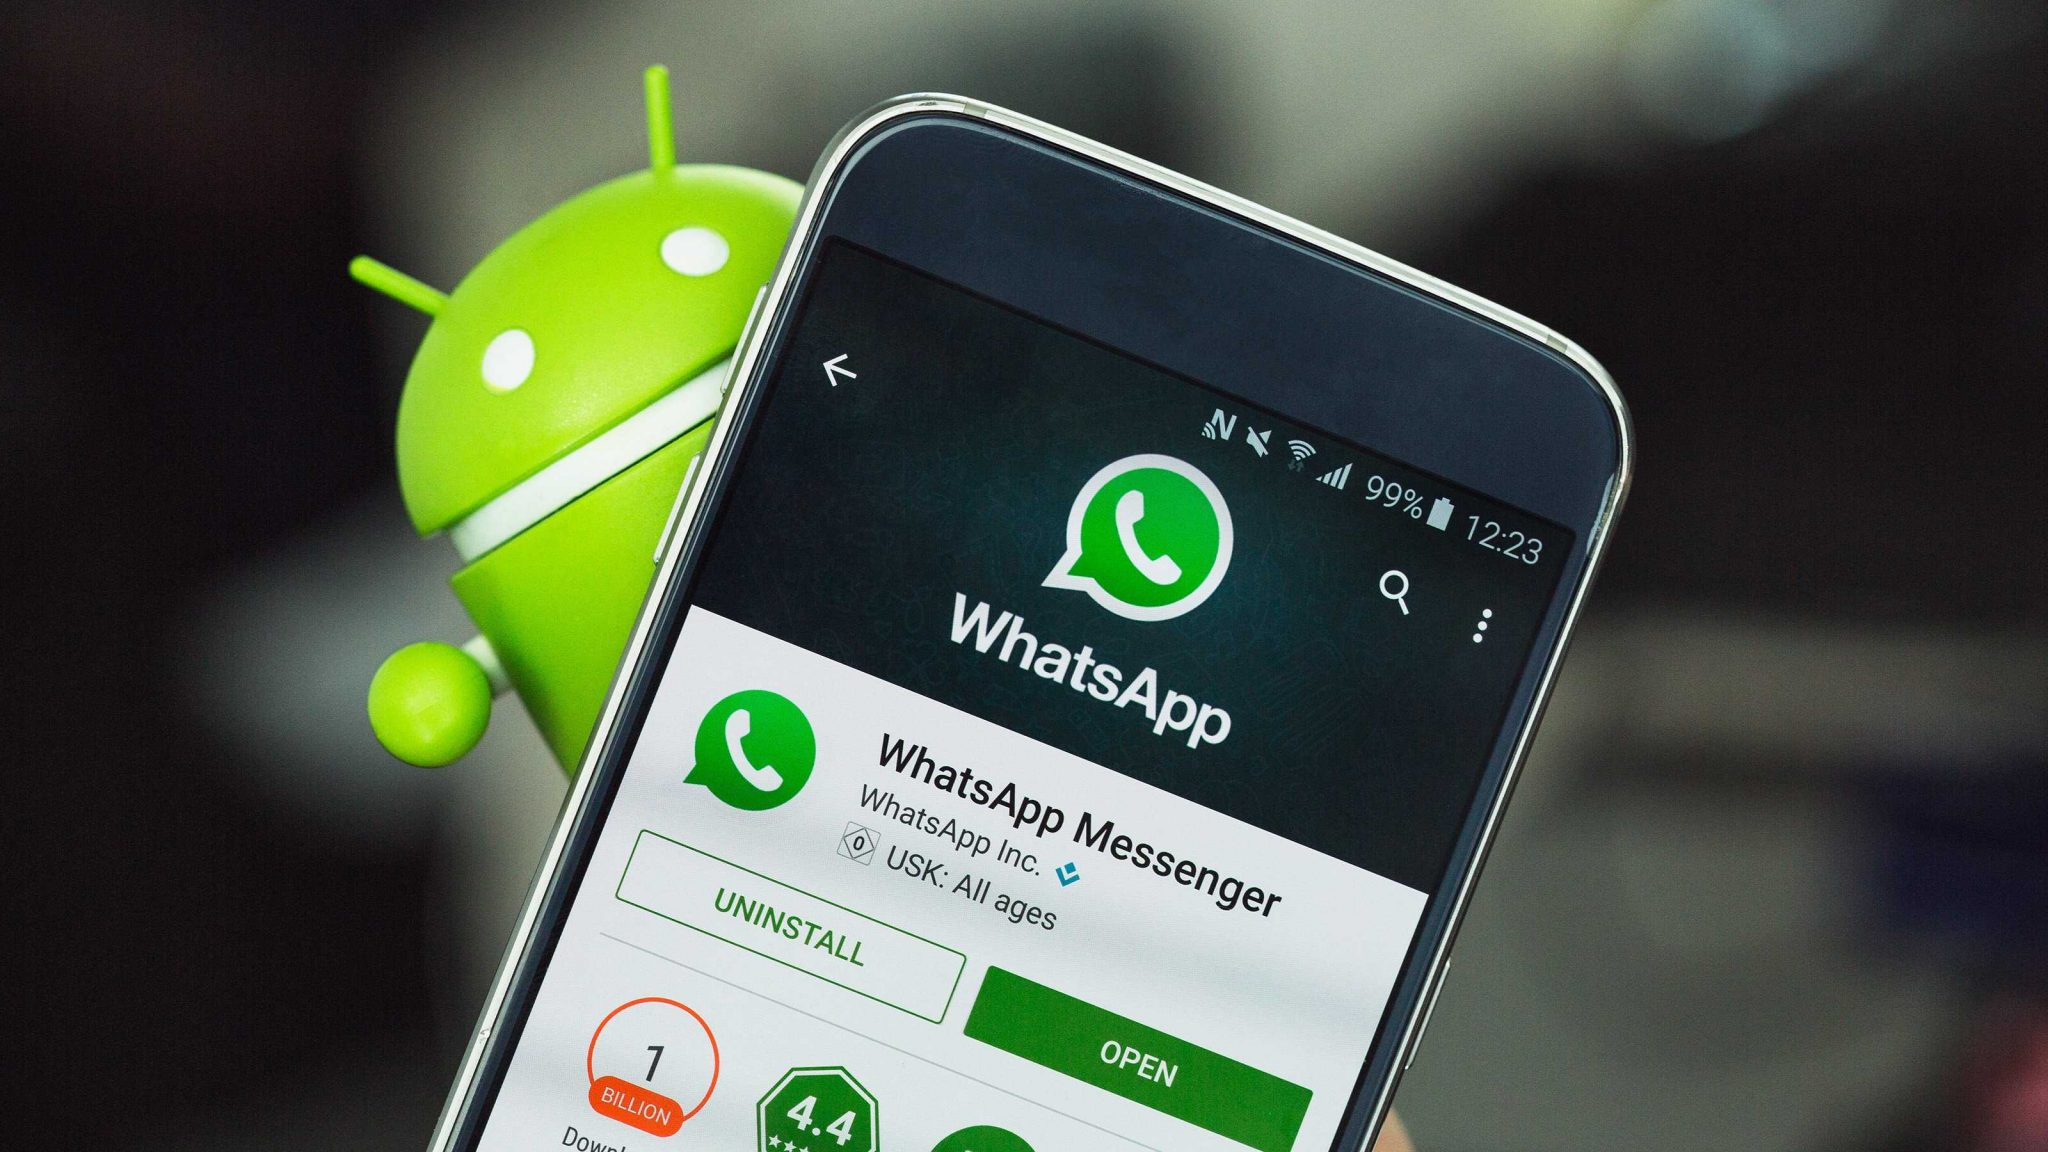 ANDROID USERS BETA VERSION MESSAGE REPLY PRIVATELY